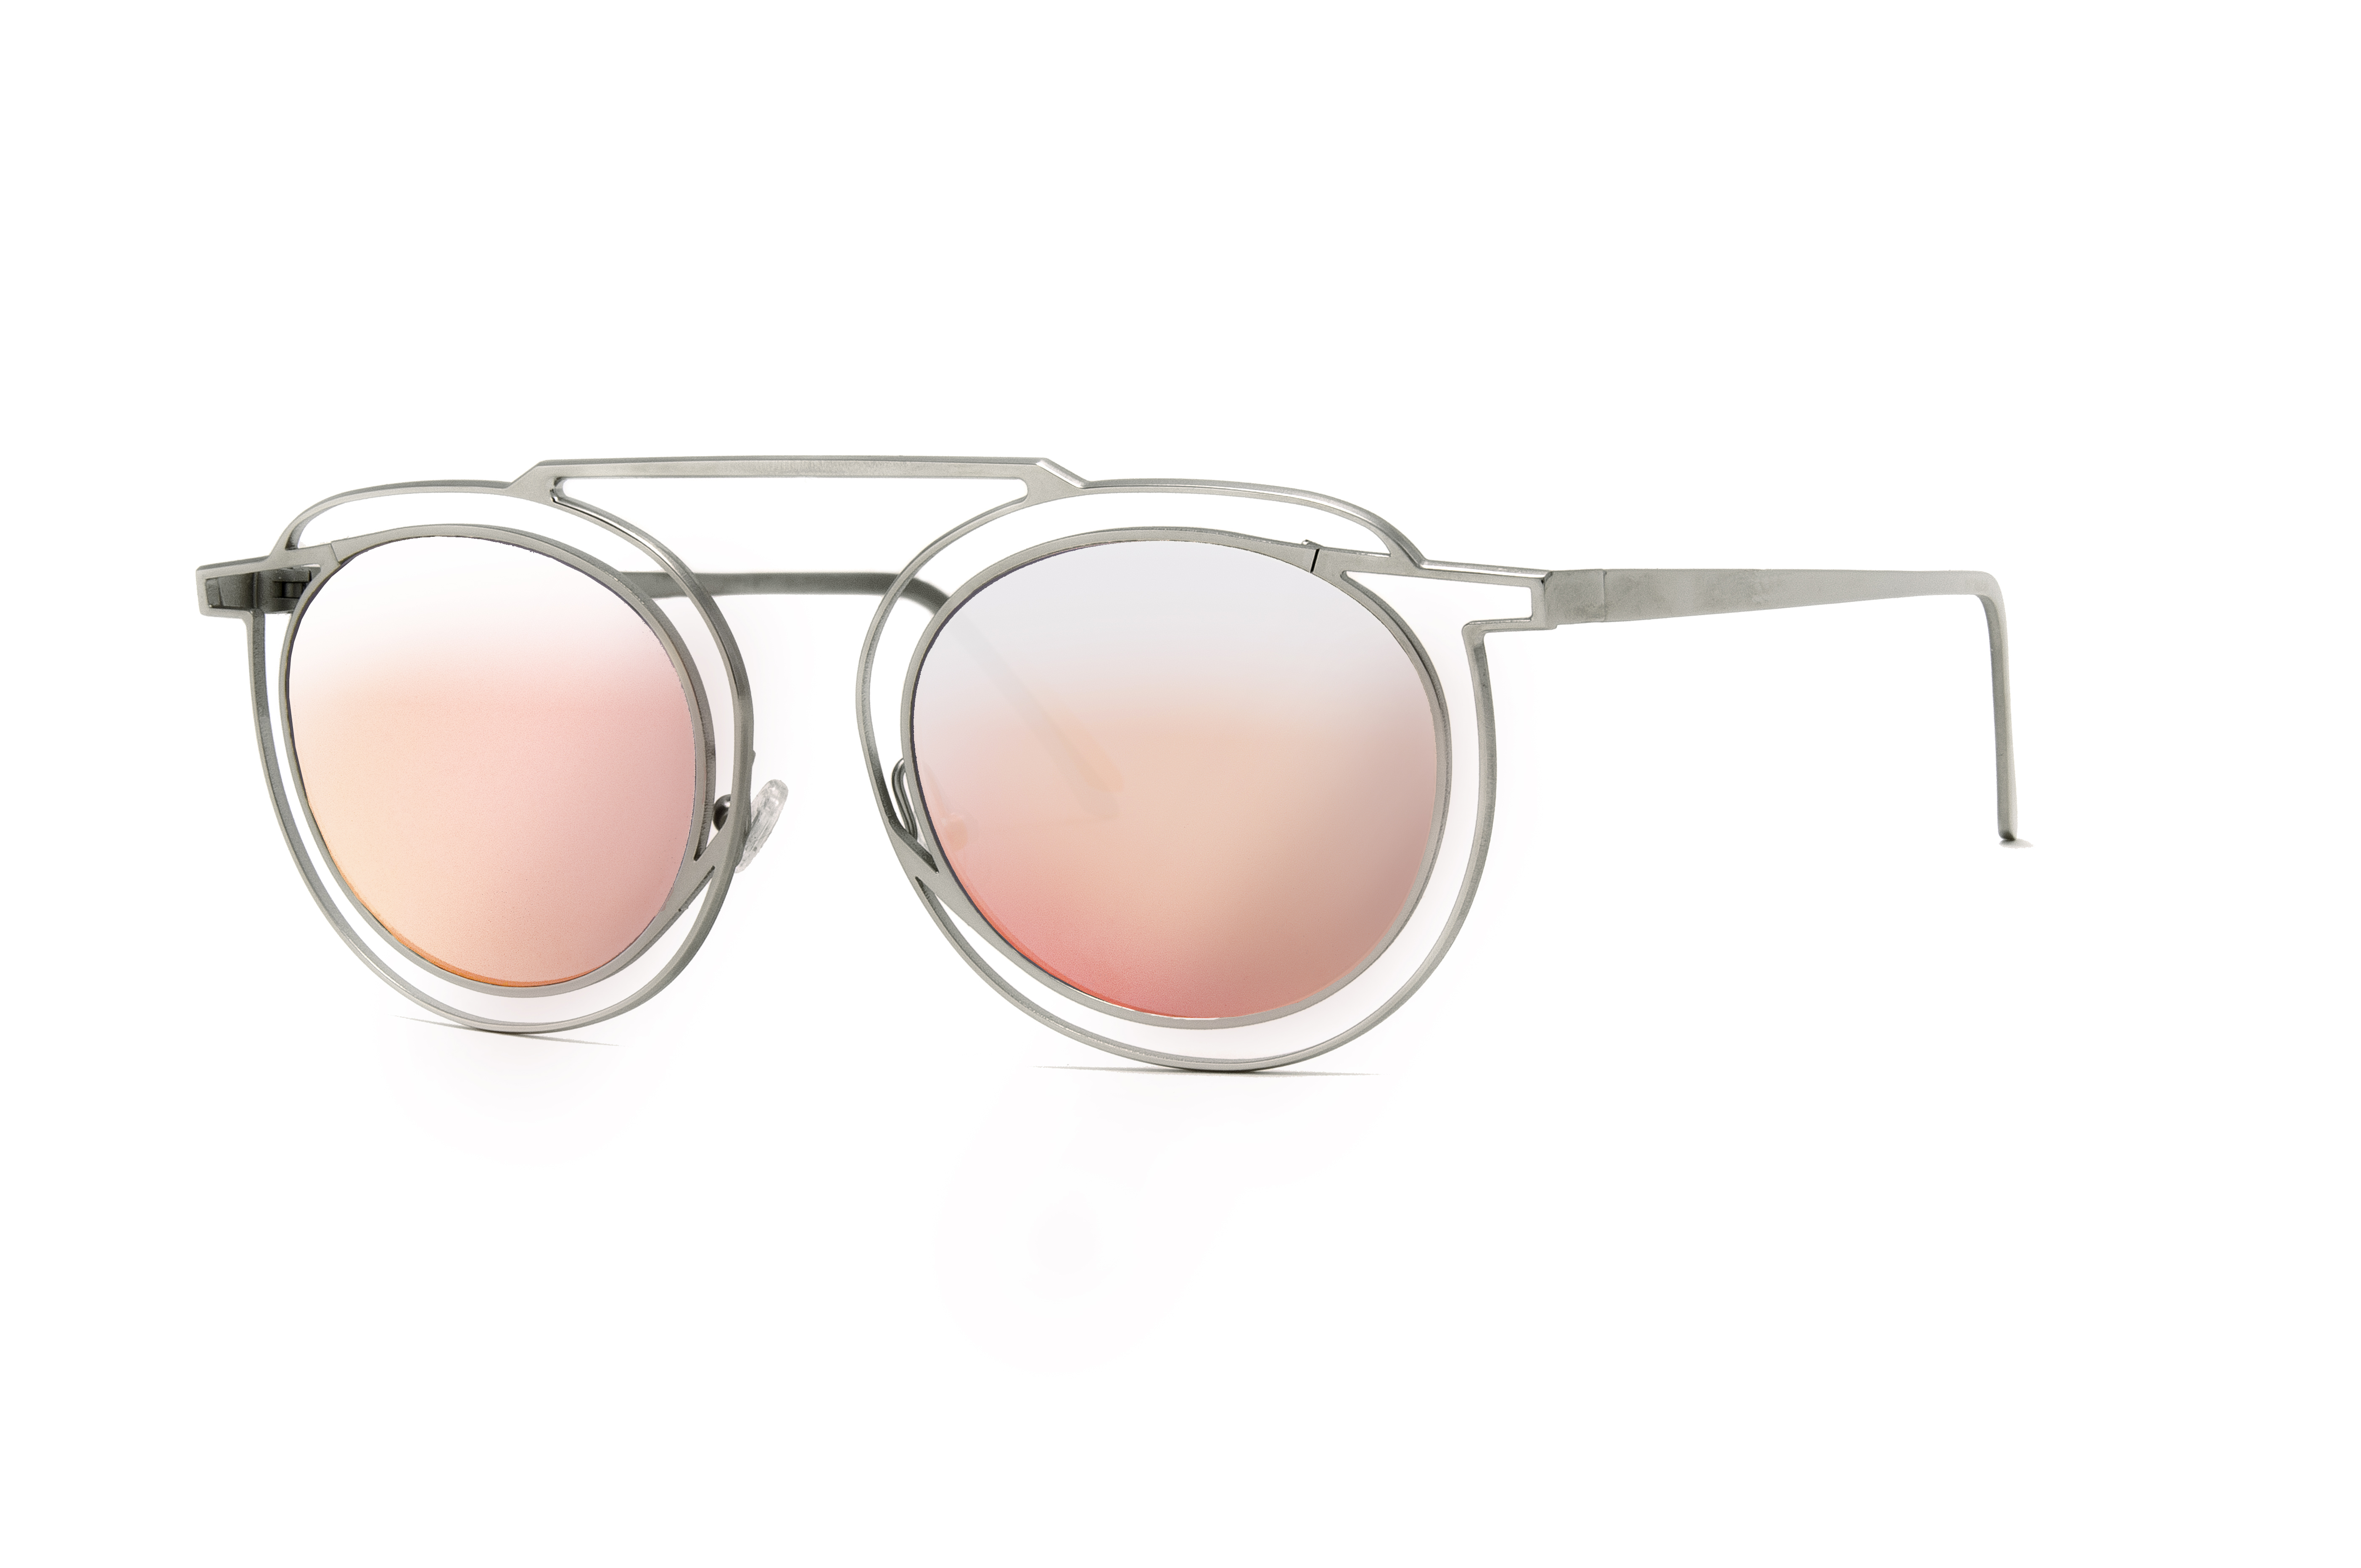 Unisex frames with flat pink silver mirror lenses by Thierry Lasry for the Alchemist pop-up